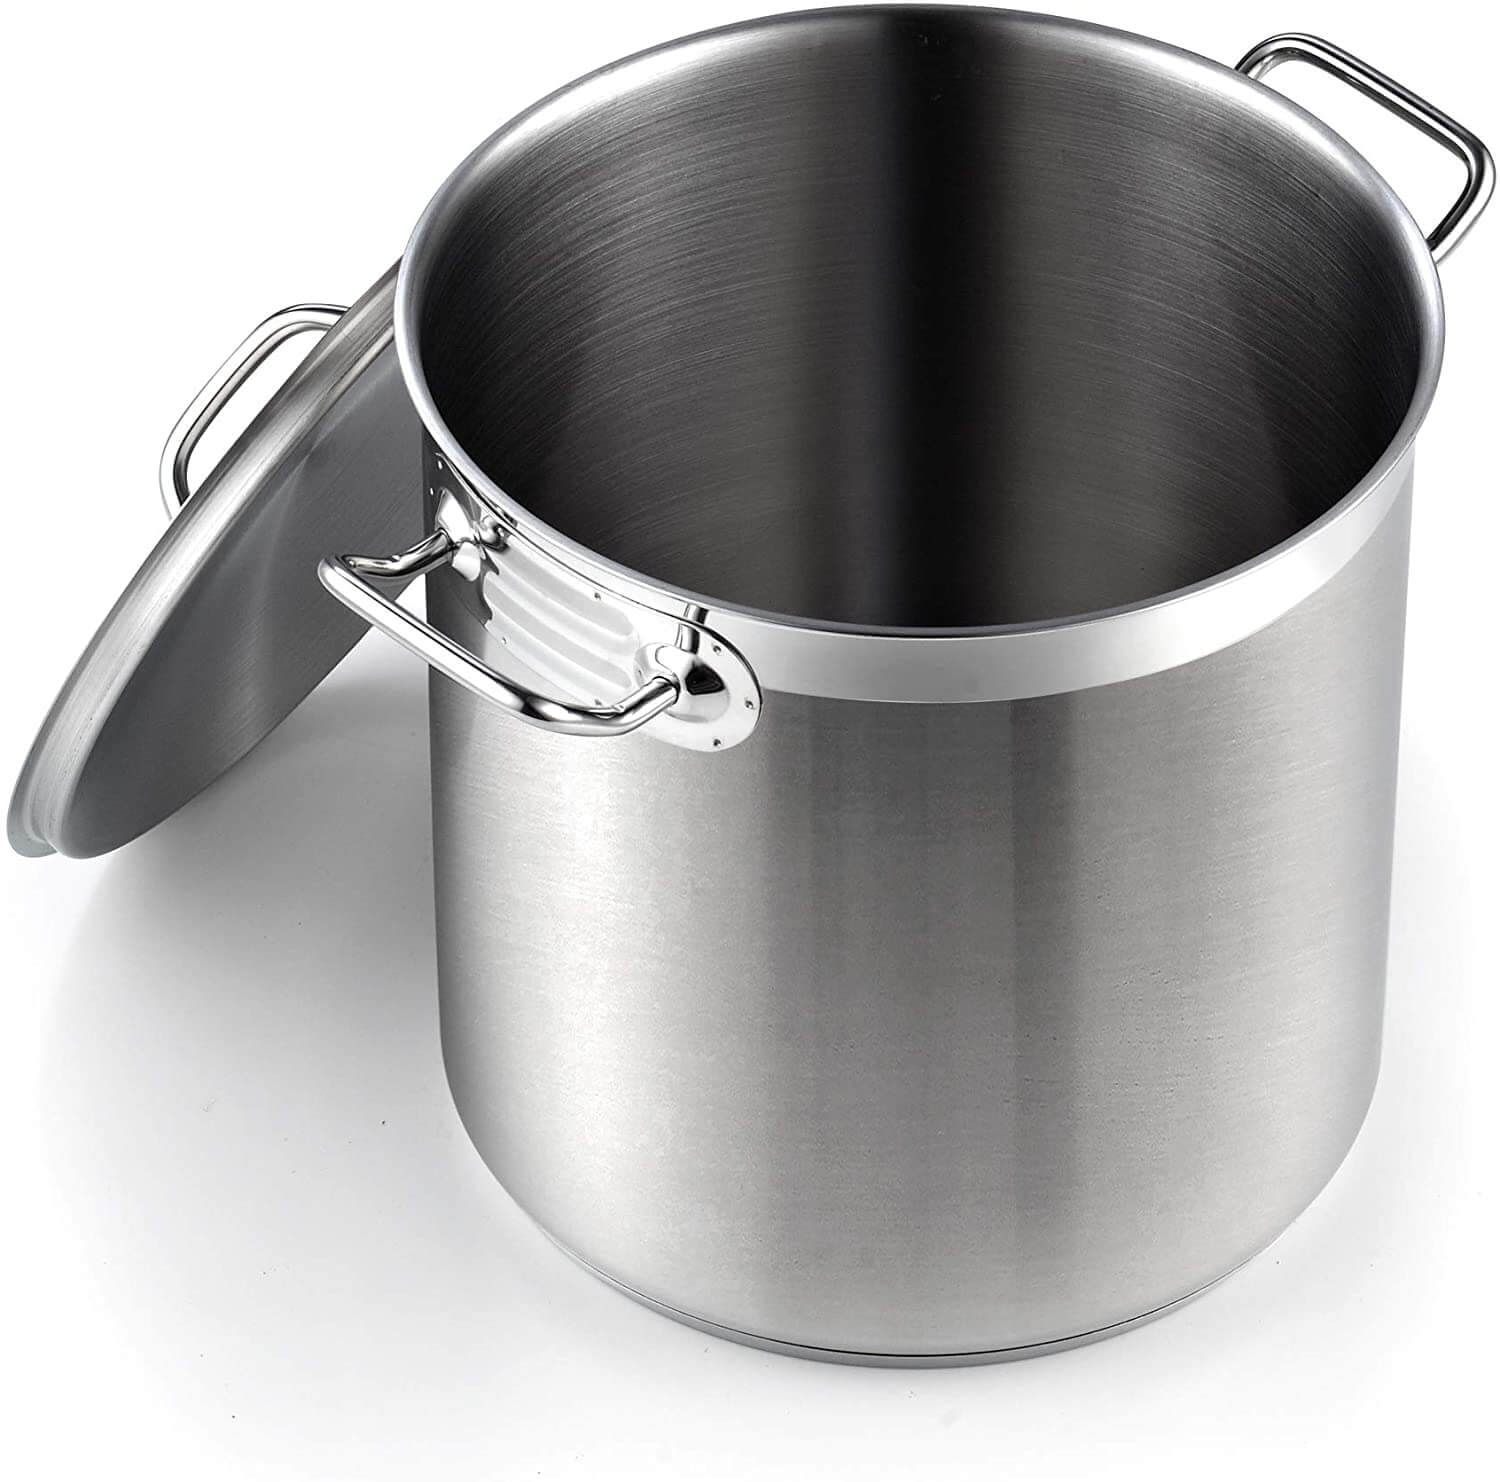 Cooks Standard Professional Grade Lid 11 Quart Stainless Steel Stockpot